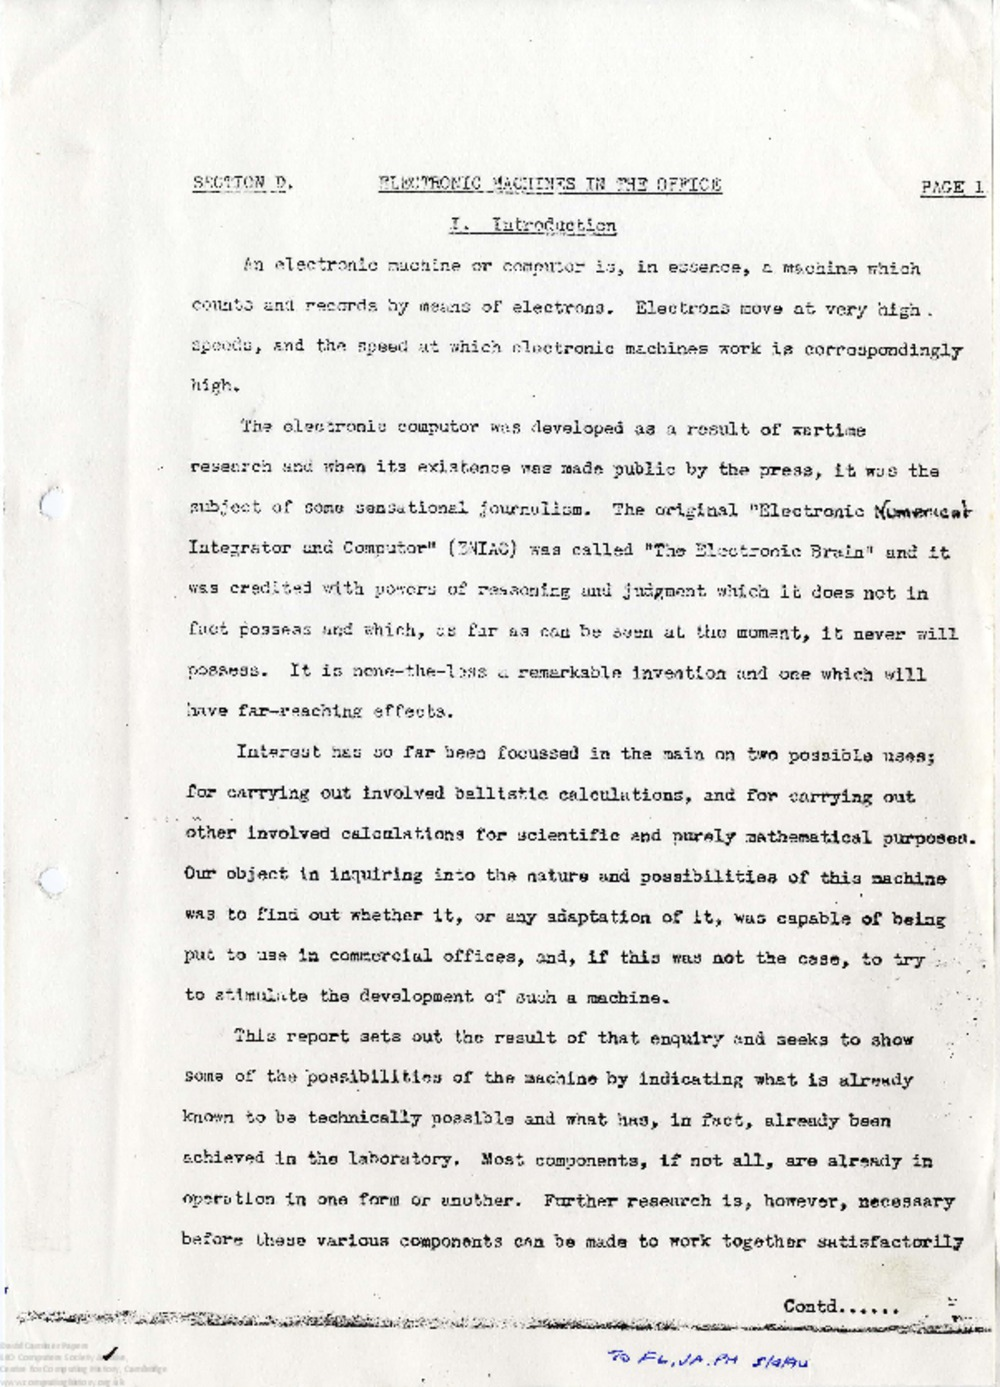 Article: 63012 Section D - American Tour Report, May and June 1947